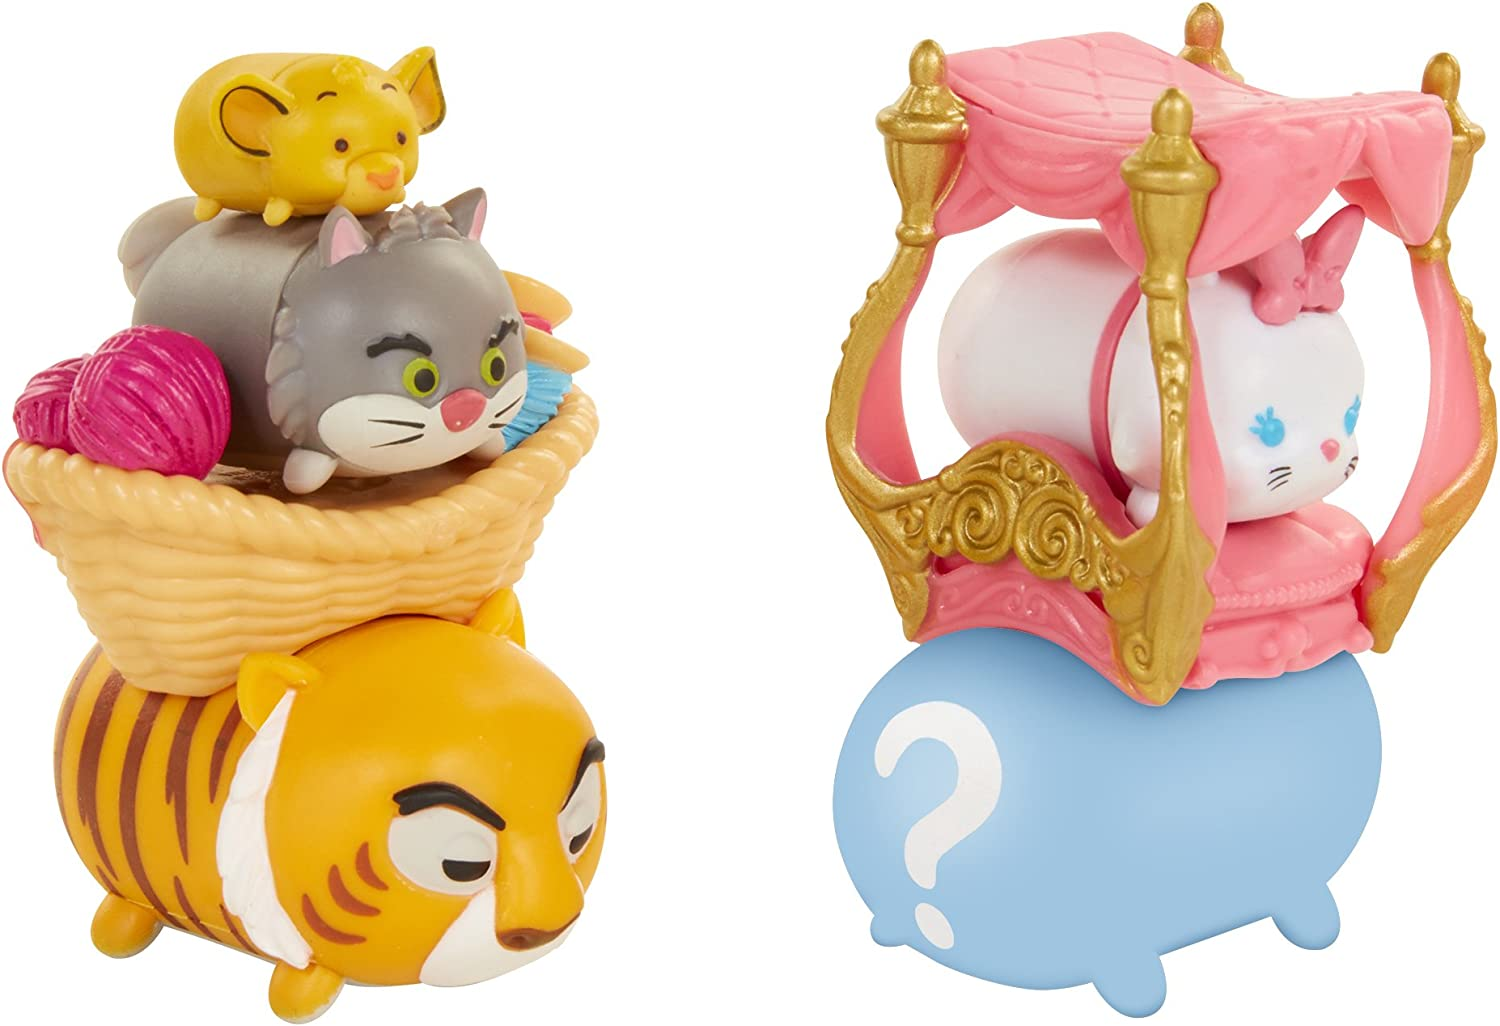 TSUM TSUM Disney 7 Pack Figures Series 7, Style #1, Cat Pack Toy Figure